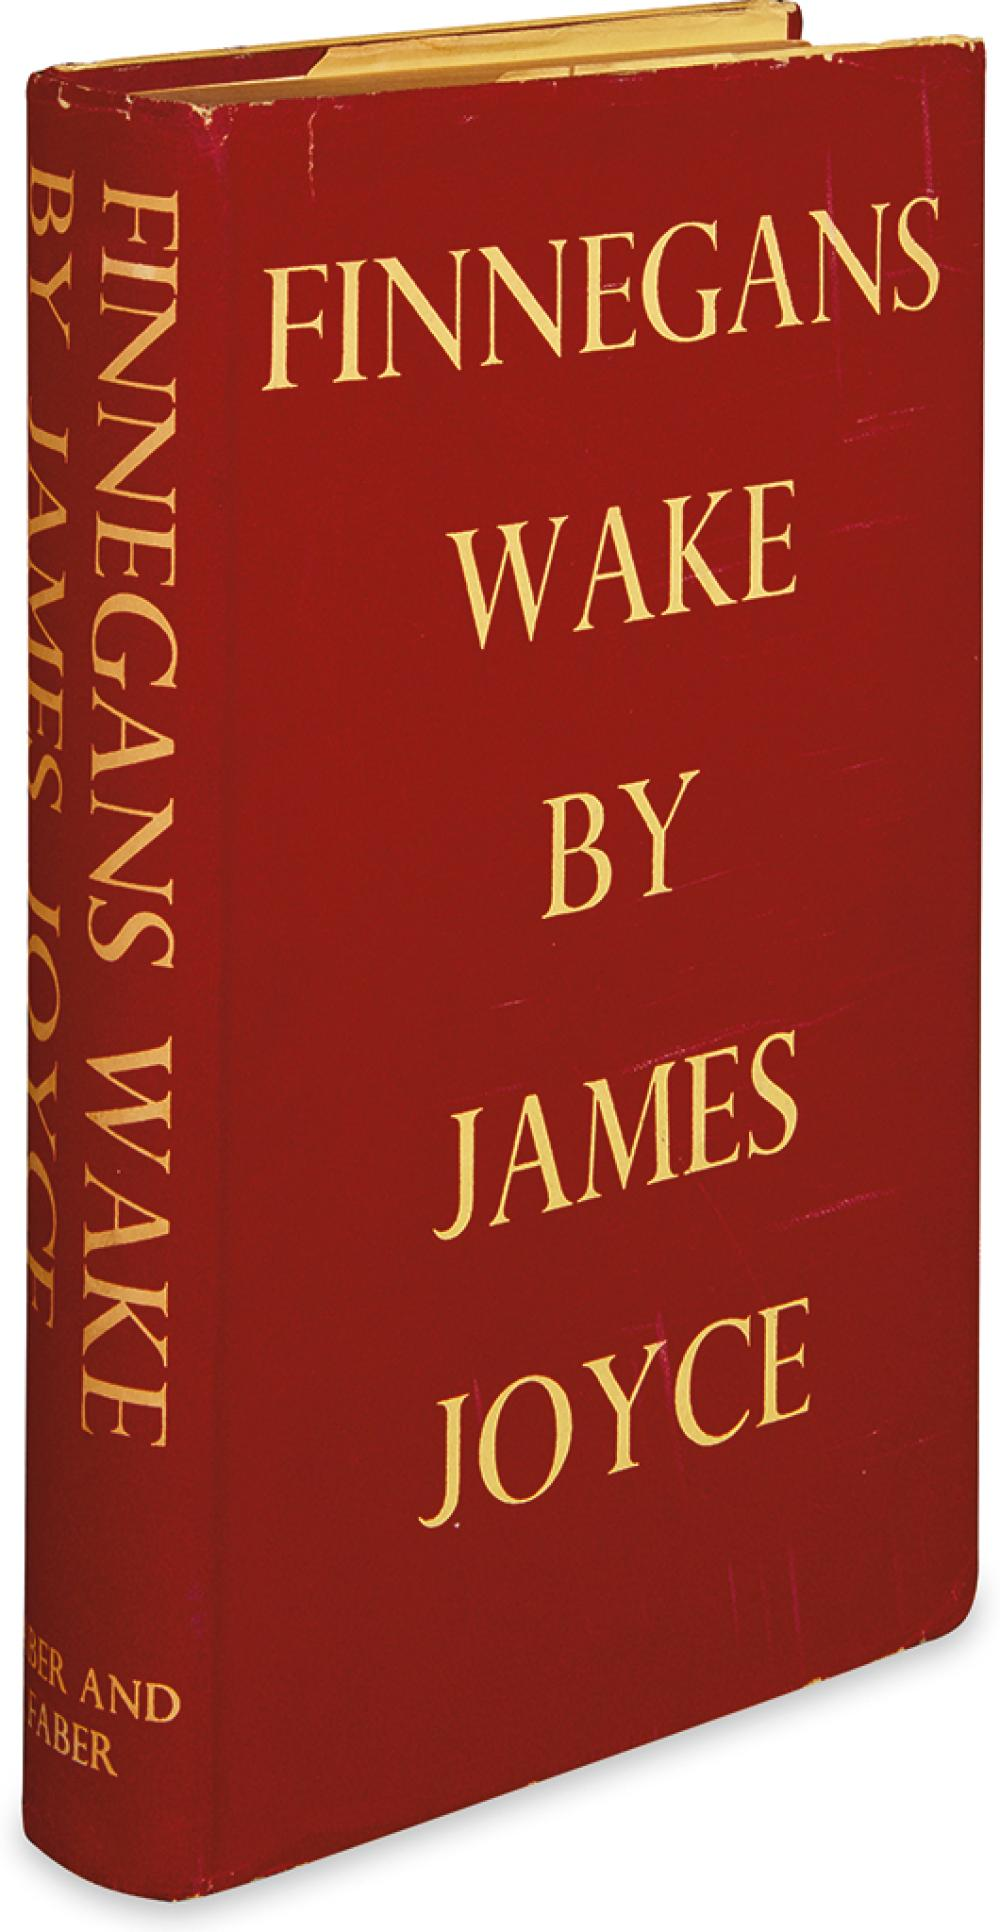 JOYCE, JAMES. Finnegans Wake.